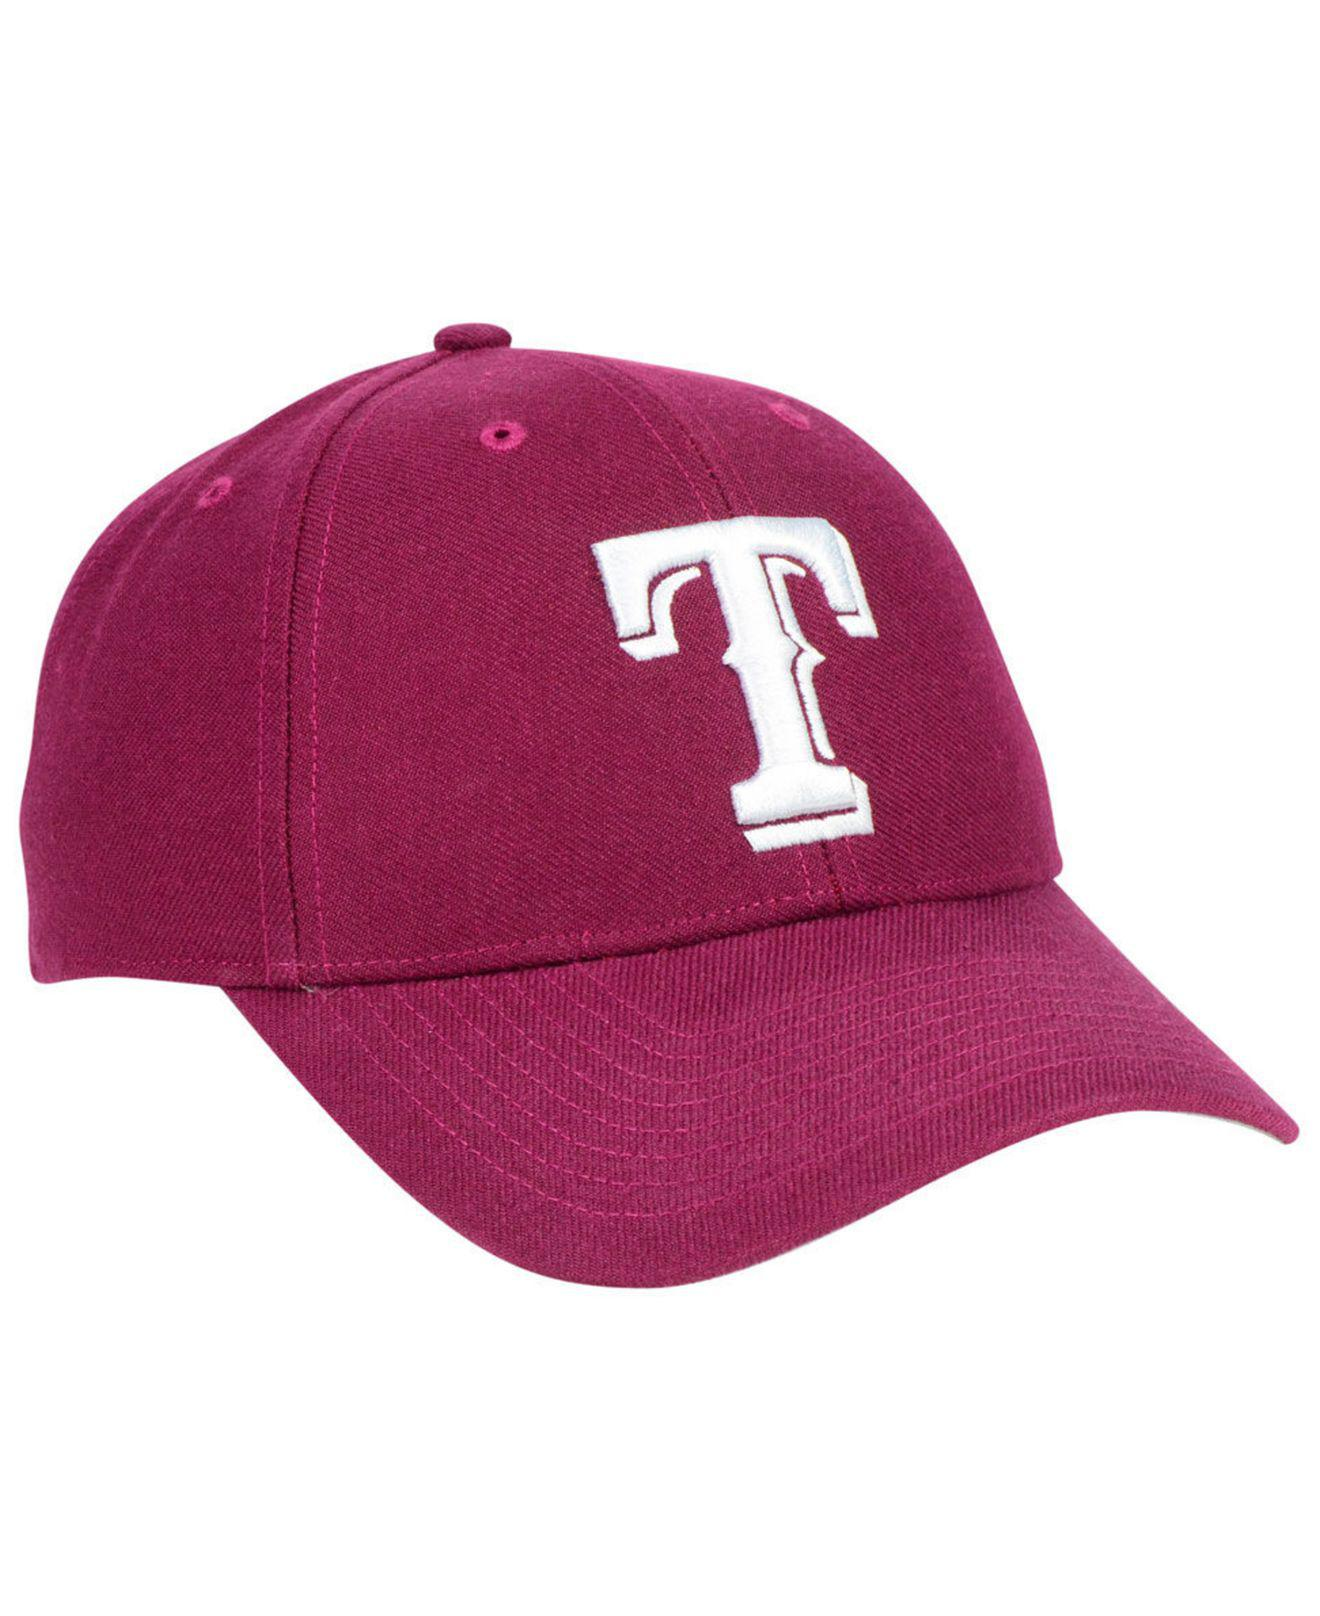 100% authentic 6f264 d9c56 ... get lyst 47 brand texas rangers cardinal mvp cap in red for men f678b  7ba04